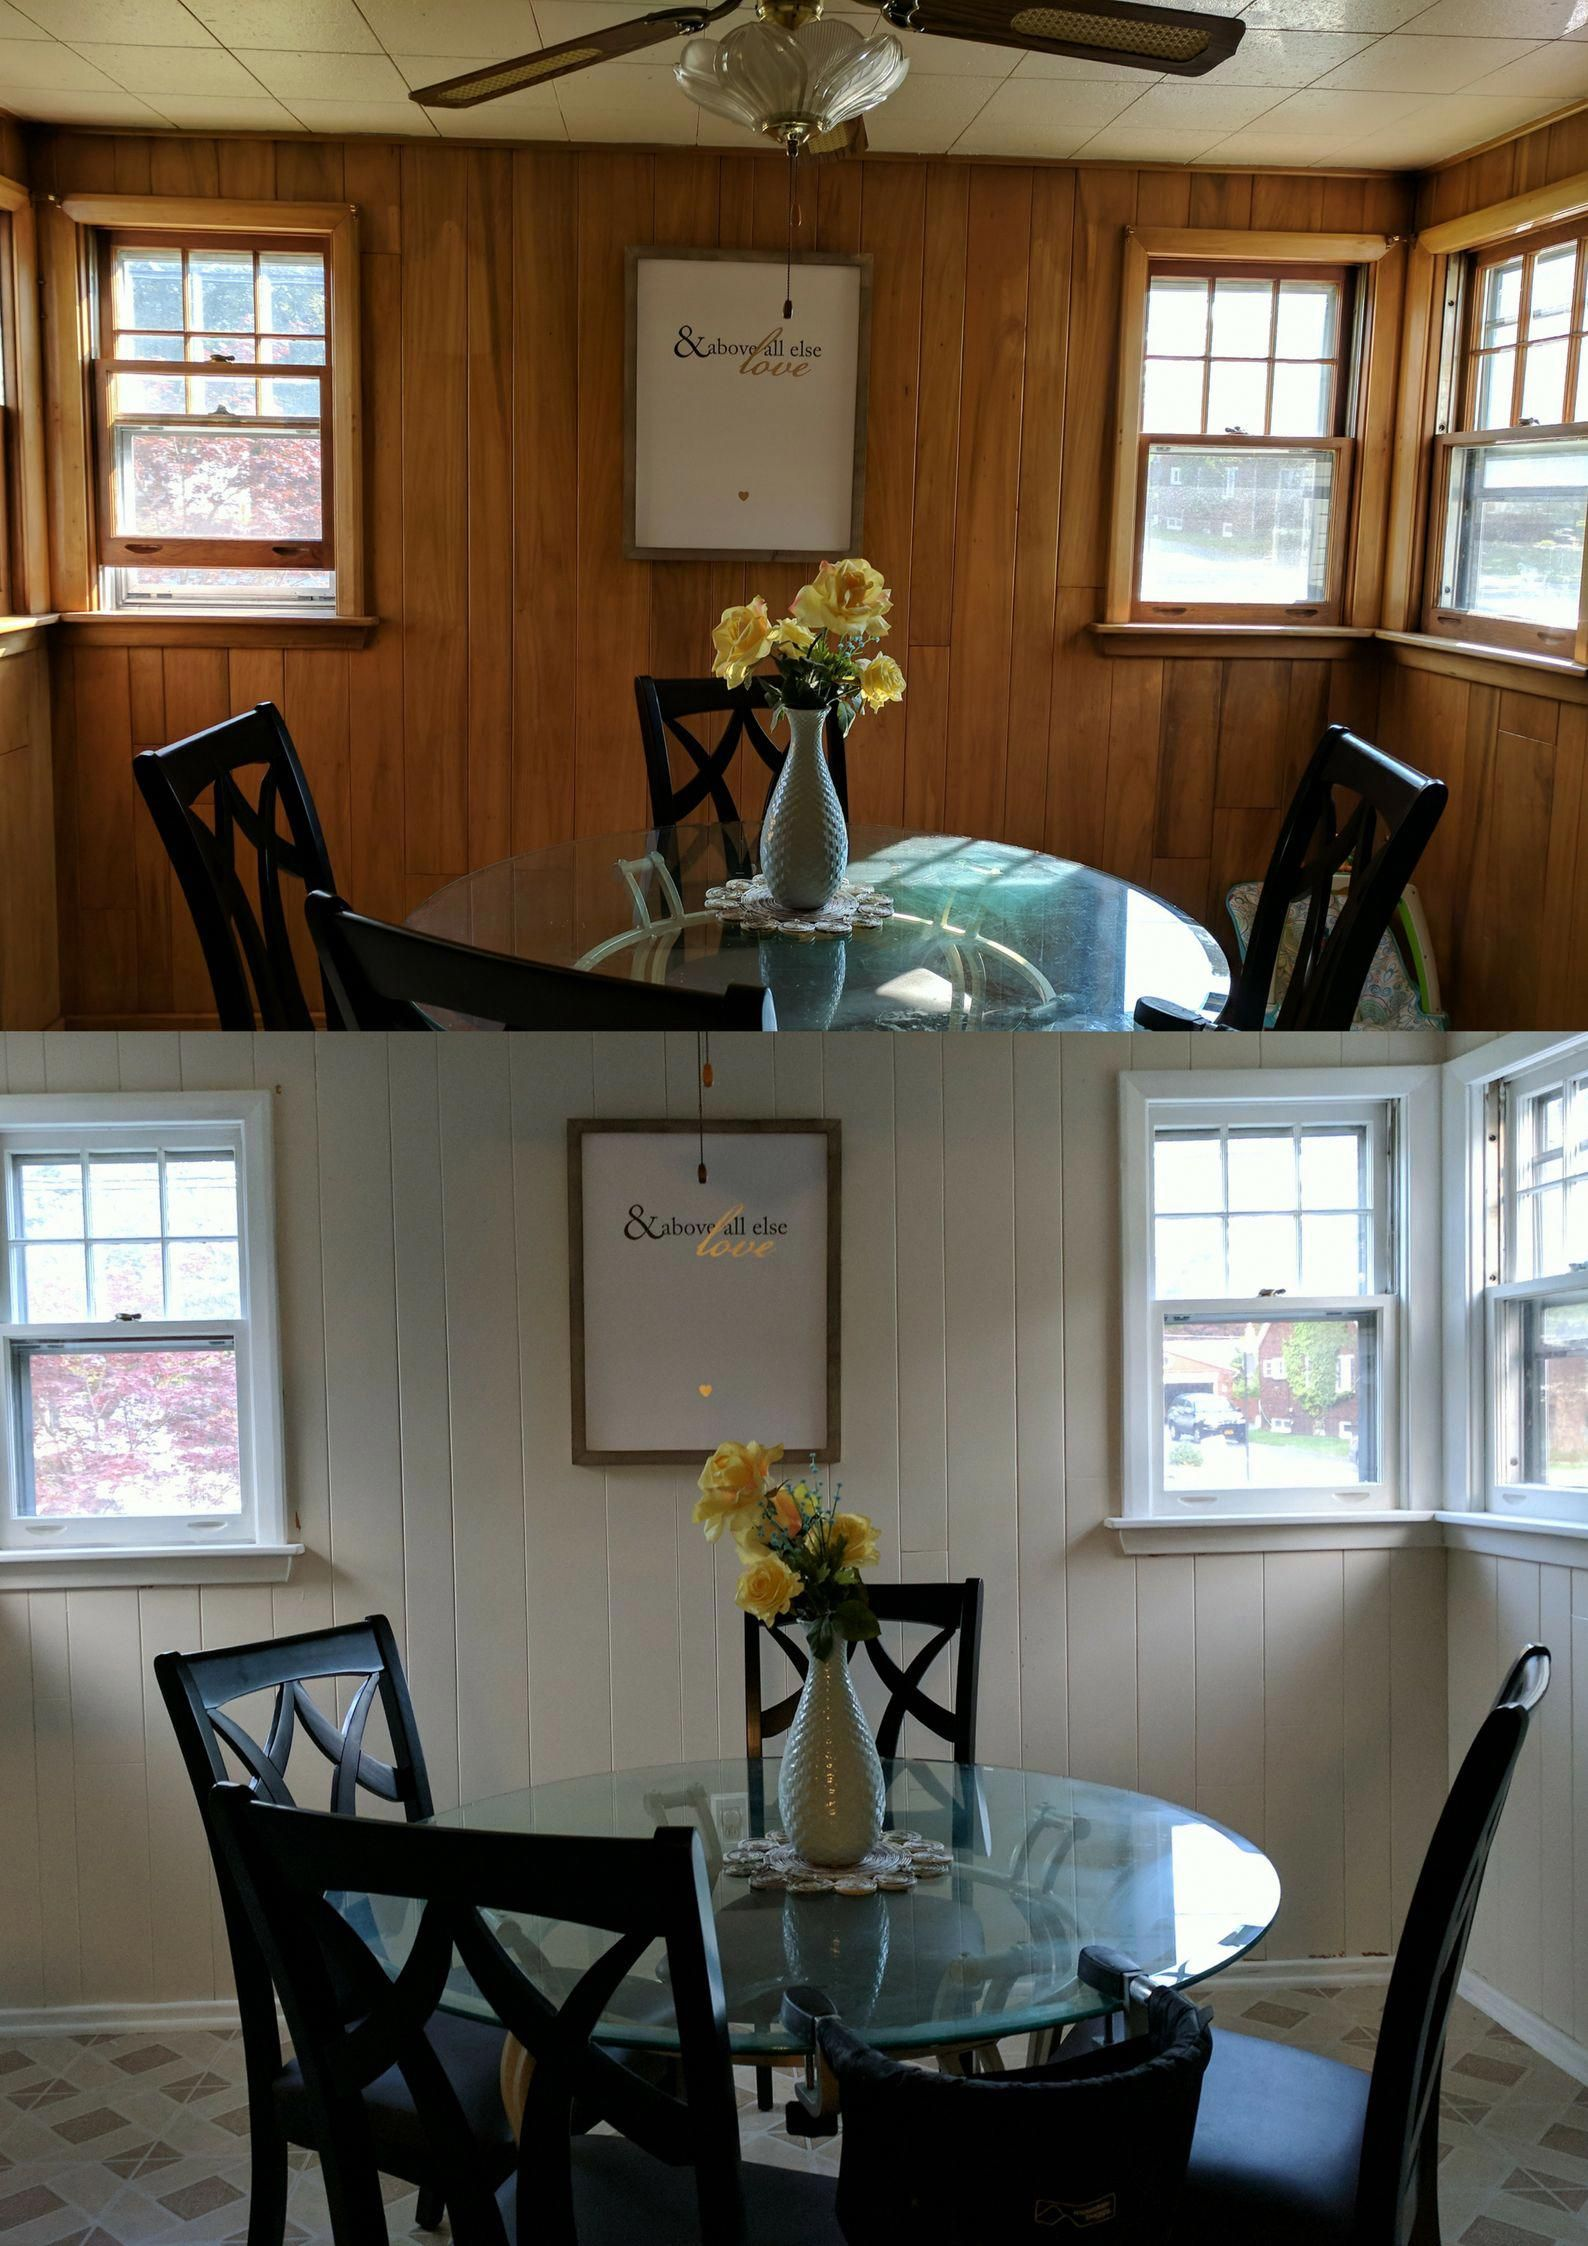 Paint Over Wood Paneling Walls: How To Paint Wood Paneling! #paint #paintpaneling